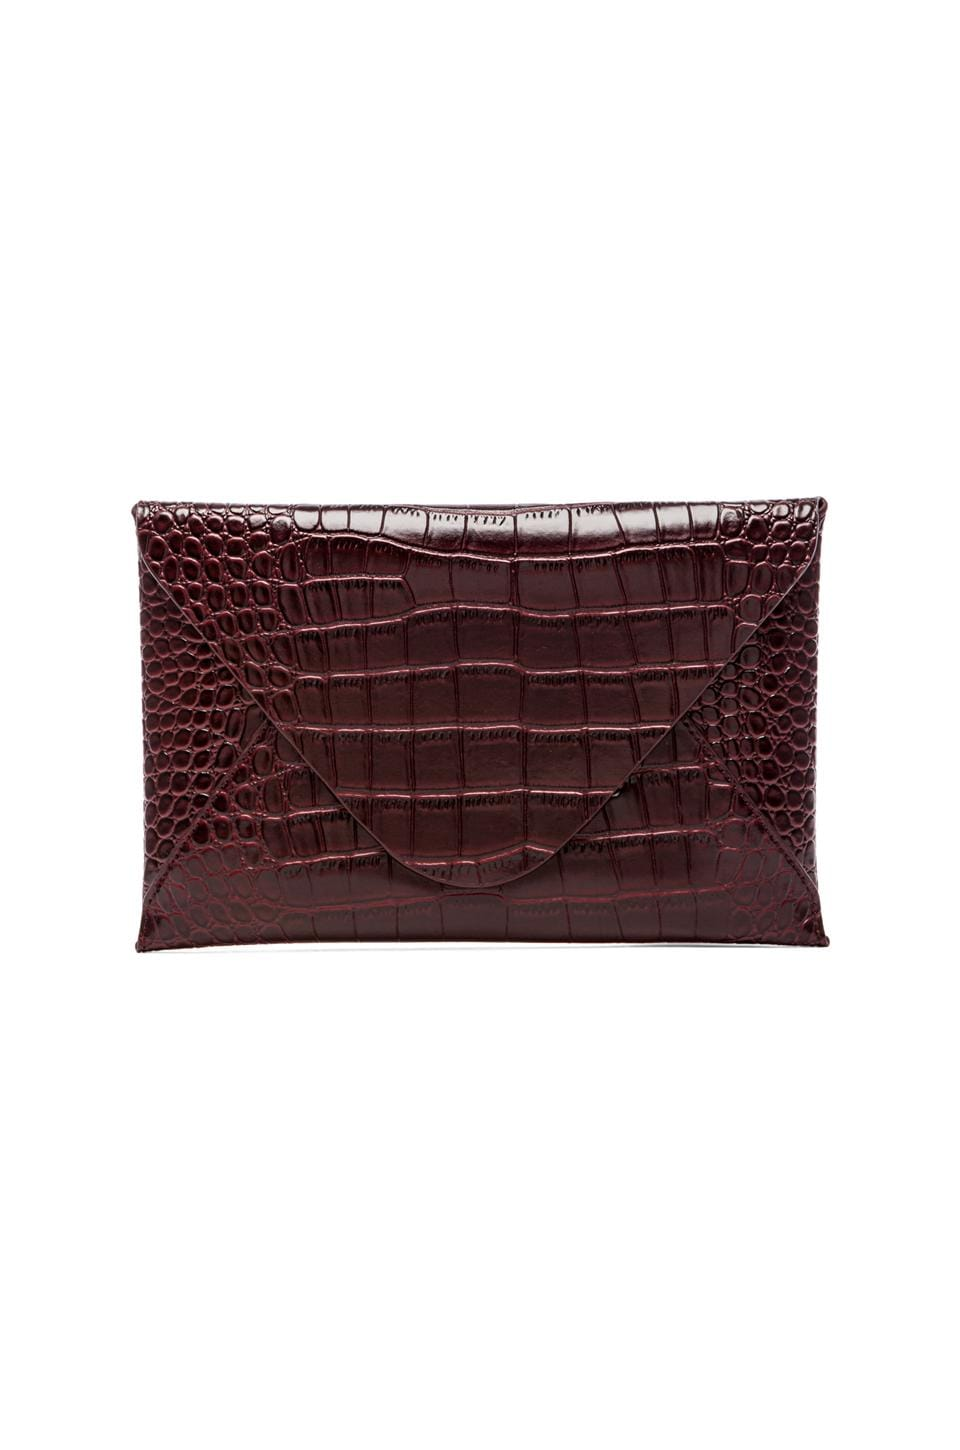 BCBGMAXAZRIA Harlow Crocodile Envelope Clutch in Royal Port